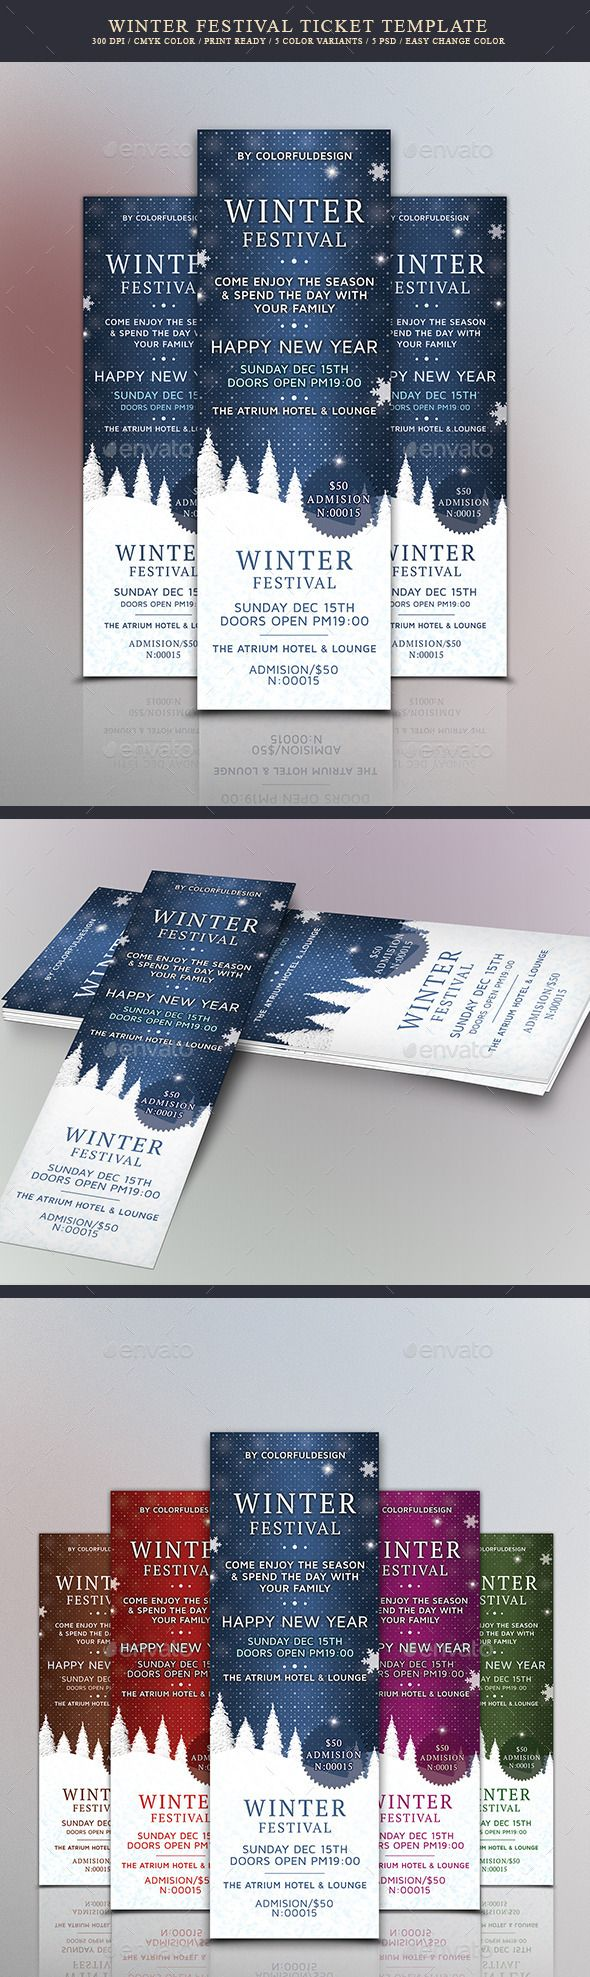 Concert Ticket Template Free Download Prepossessing 139 Best Invitation Design Images On Pinterest  Christmas Parties .